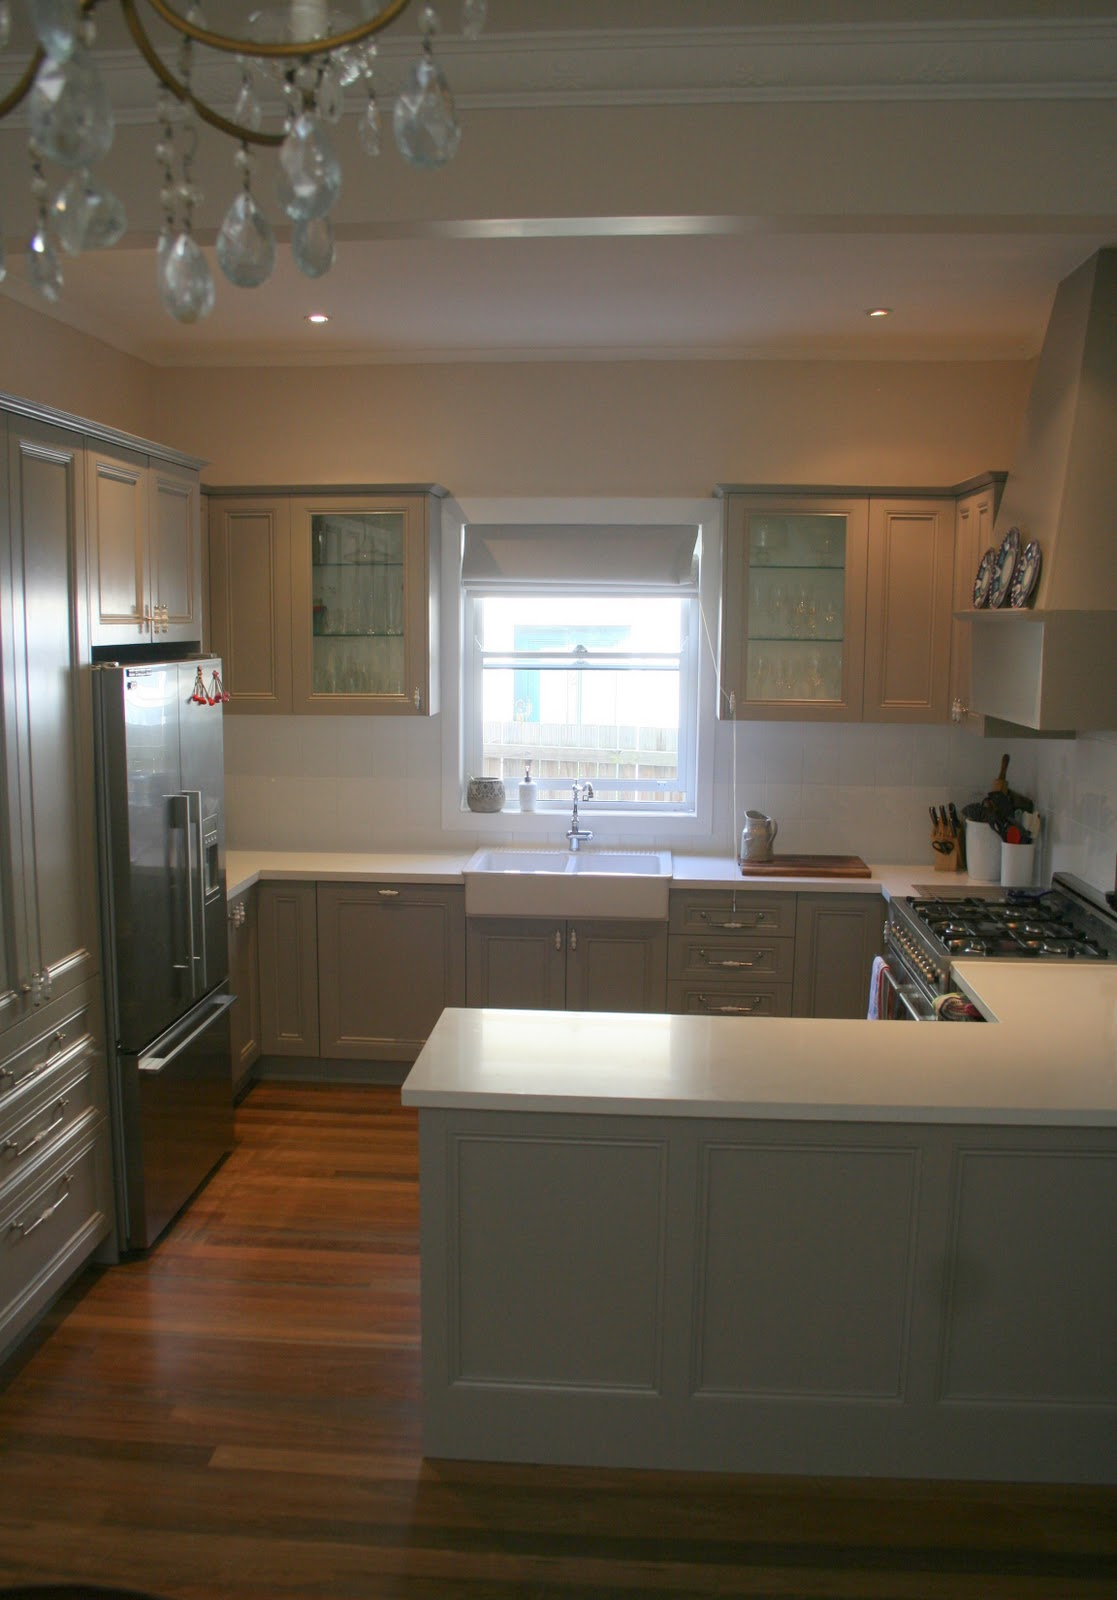 Lilyfield life our french kitchen renovations and reveal for Our life in the kitchen